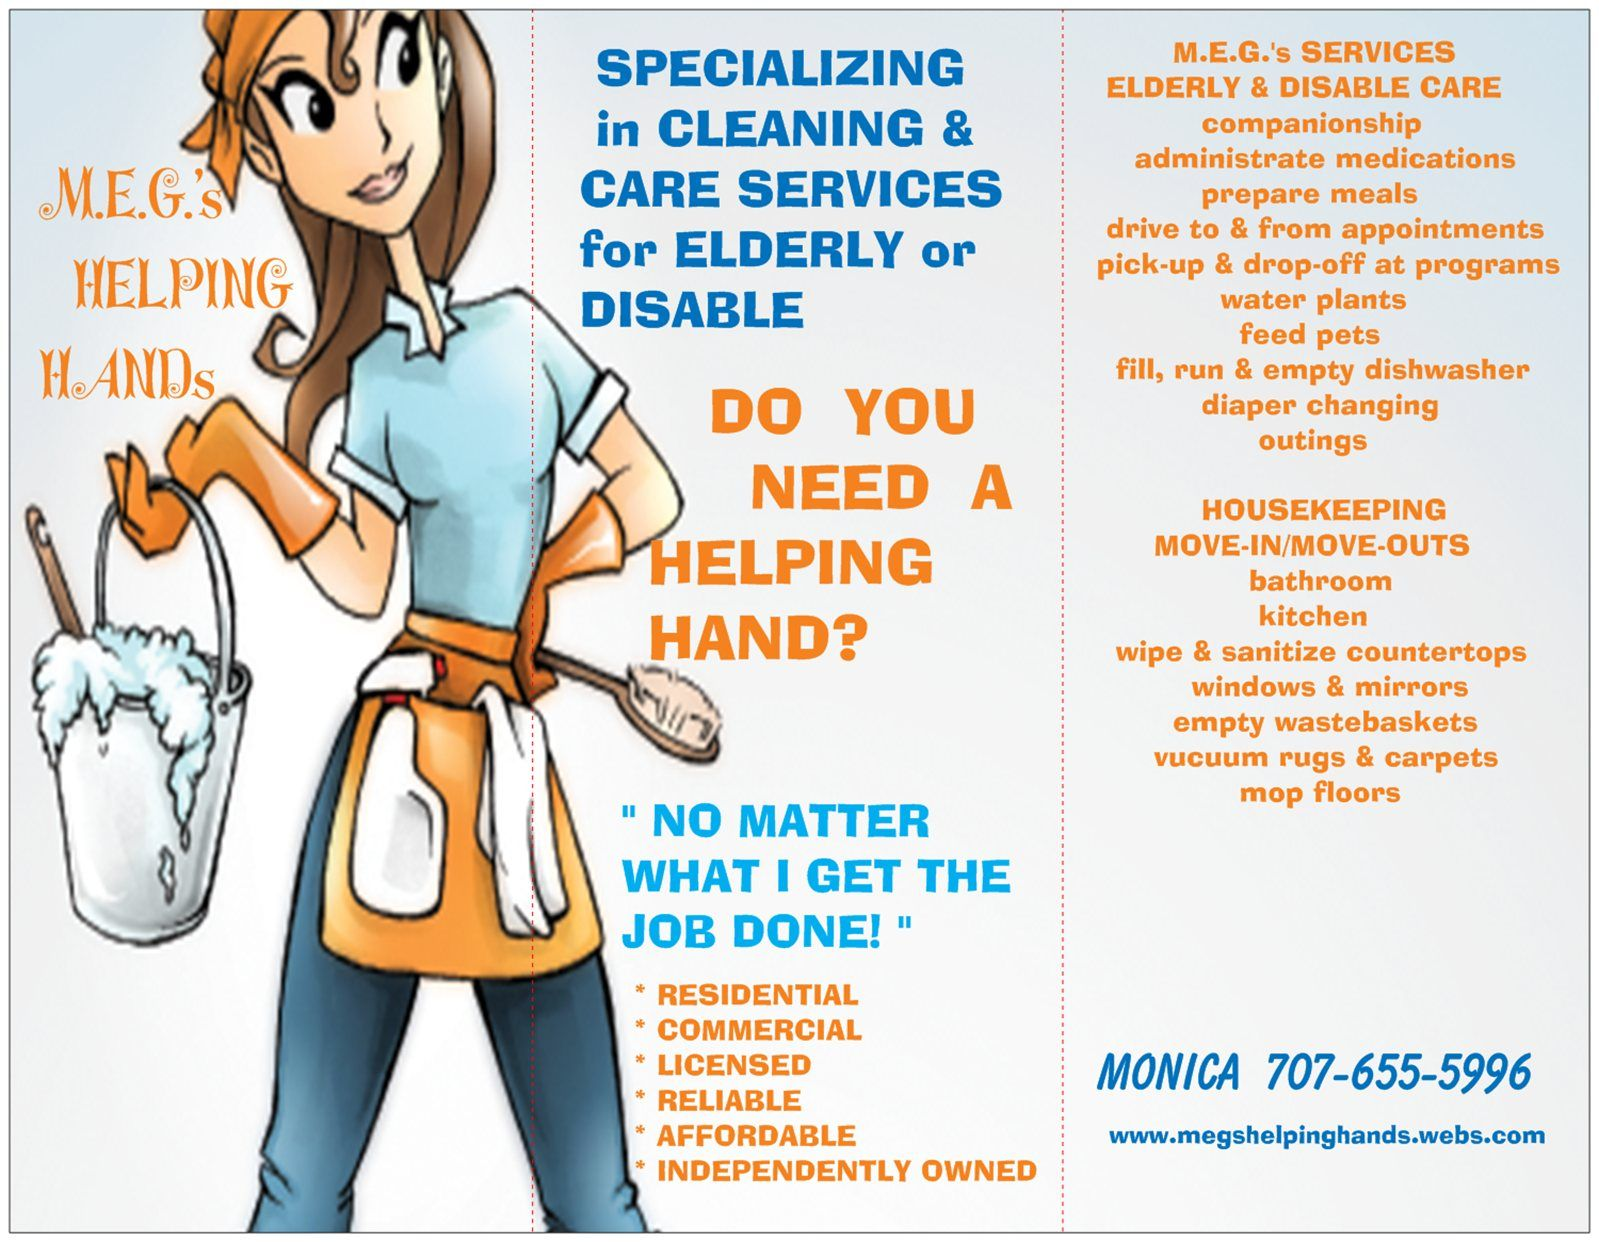 Housekeeping Flyers SPECIALIZING IN CLEANING & CARE FOR